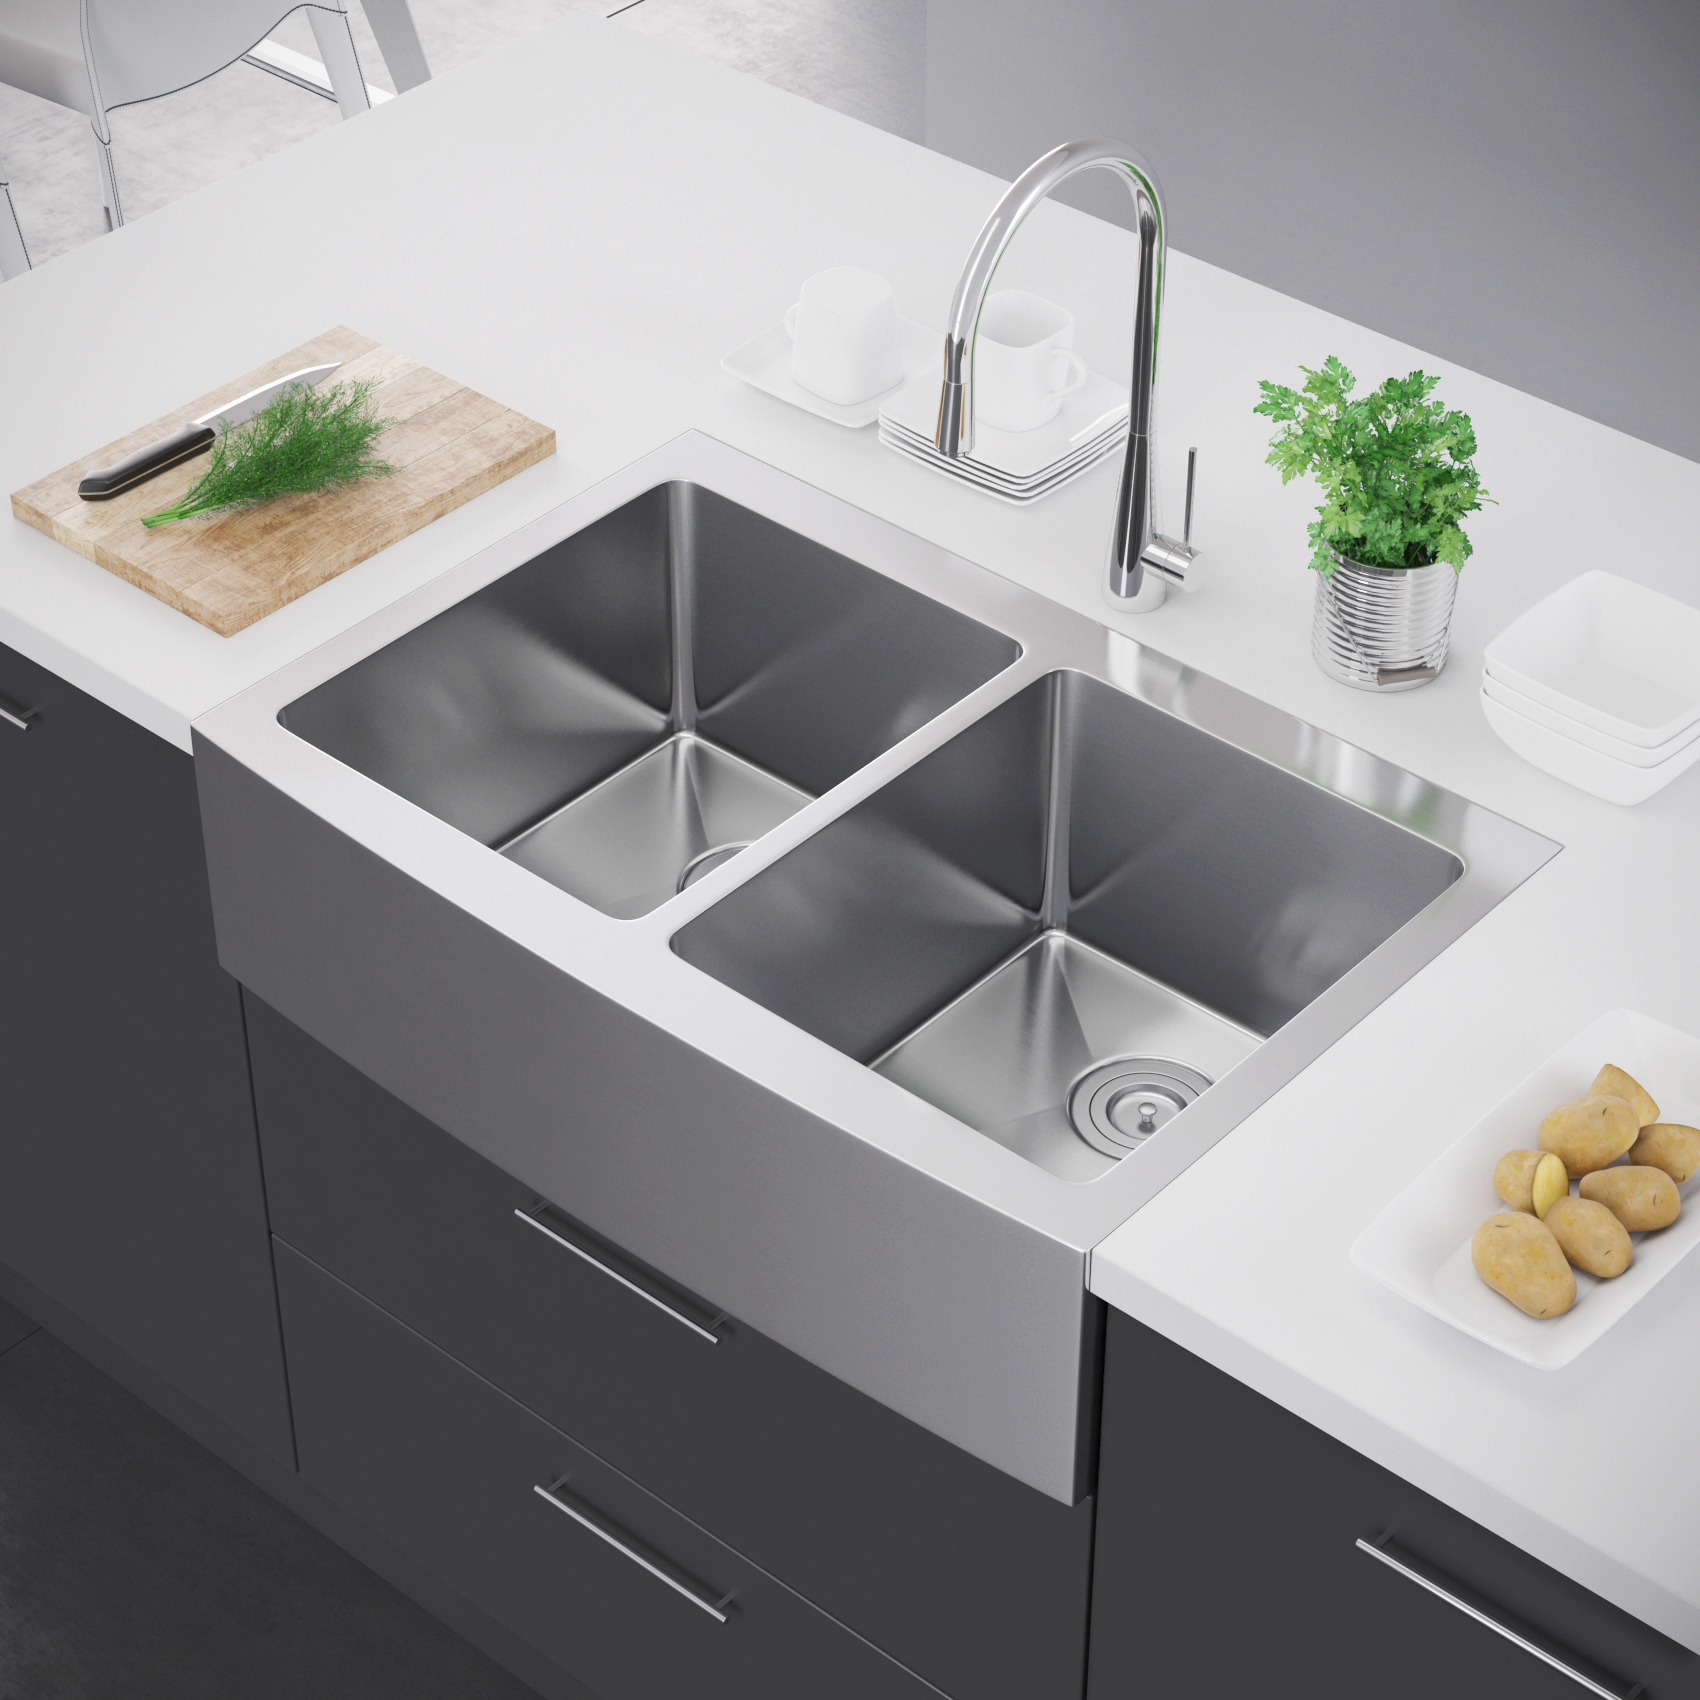 What Is The Best Gauge For A Kitchen Sink